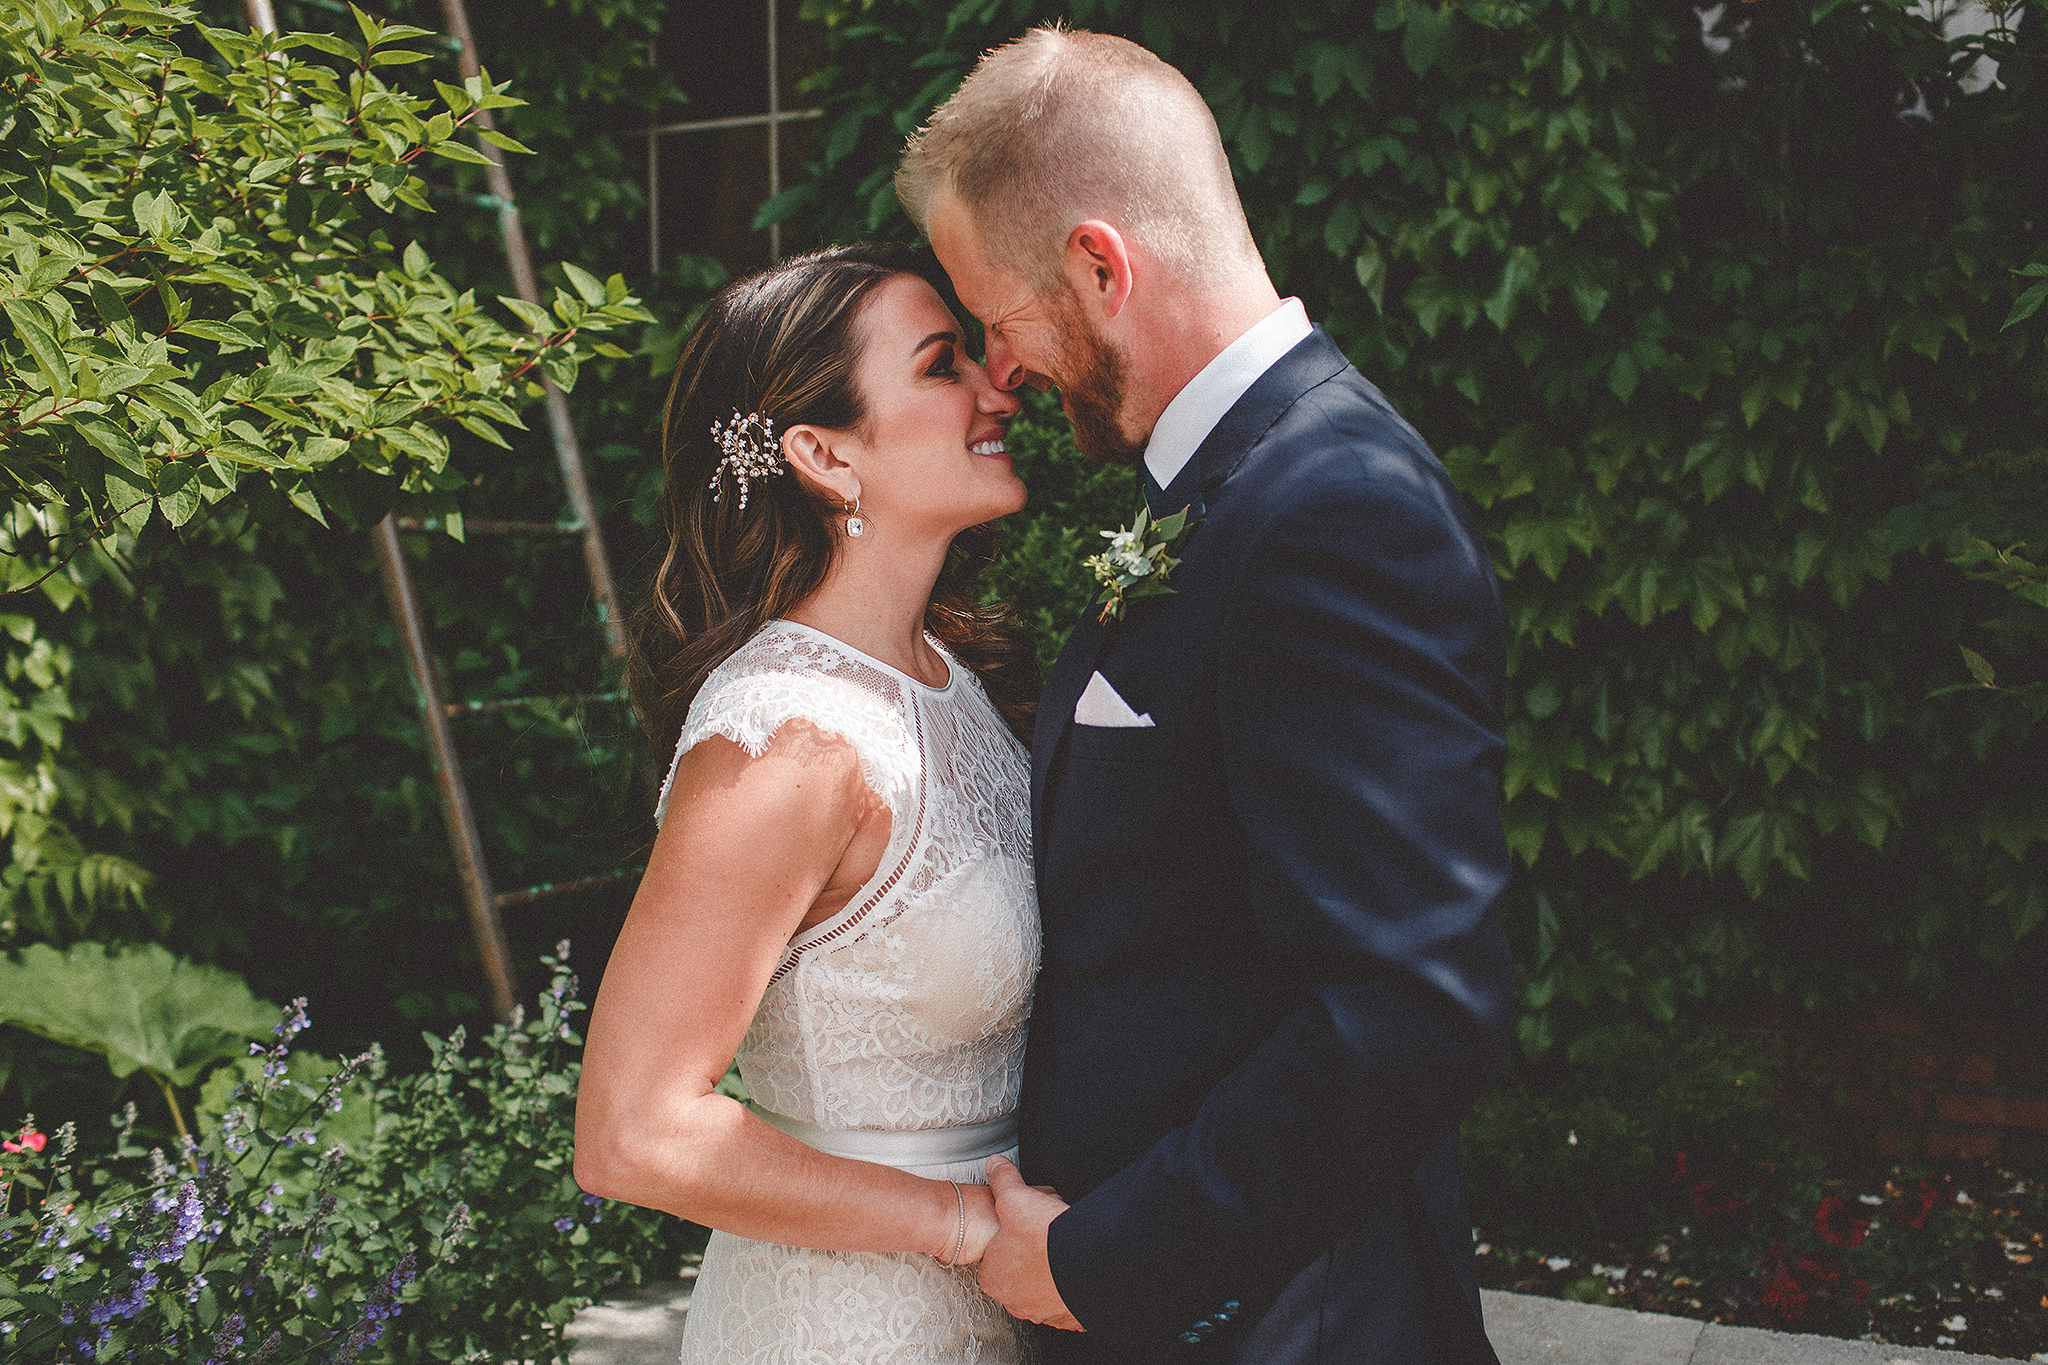 bride/groom portrait in front of ivy wall | the ivy house milwaukee wedding photographer | chrissy deming